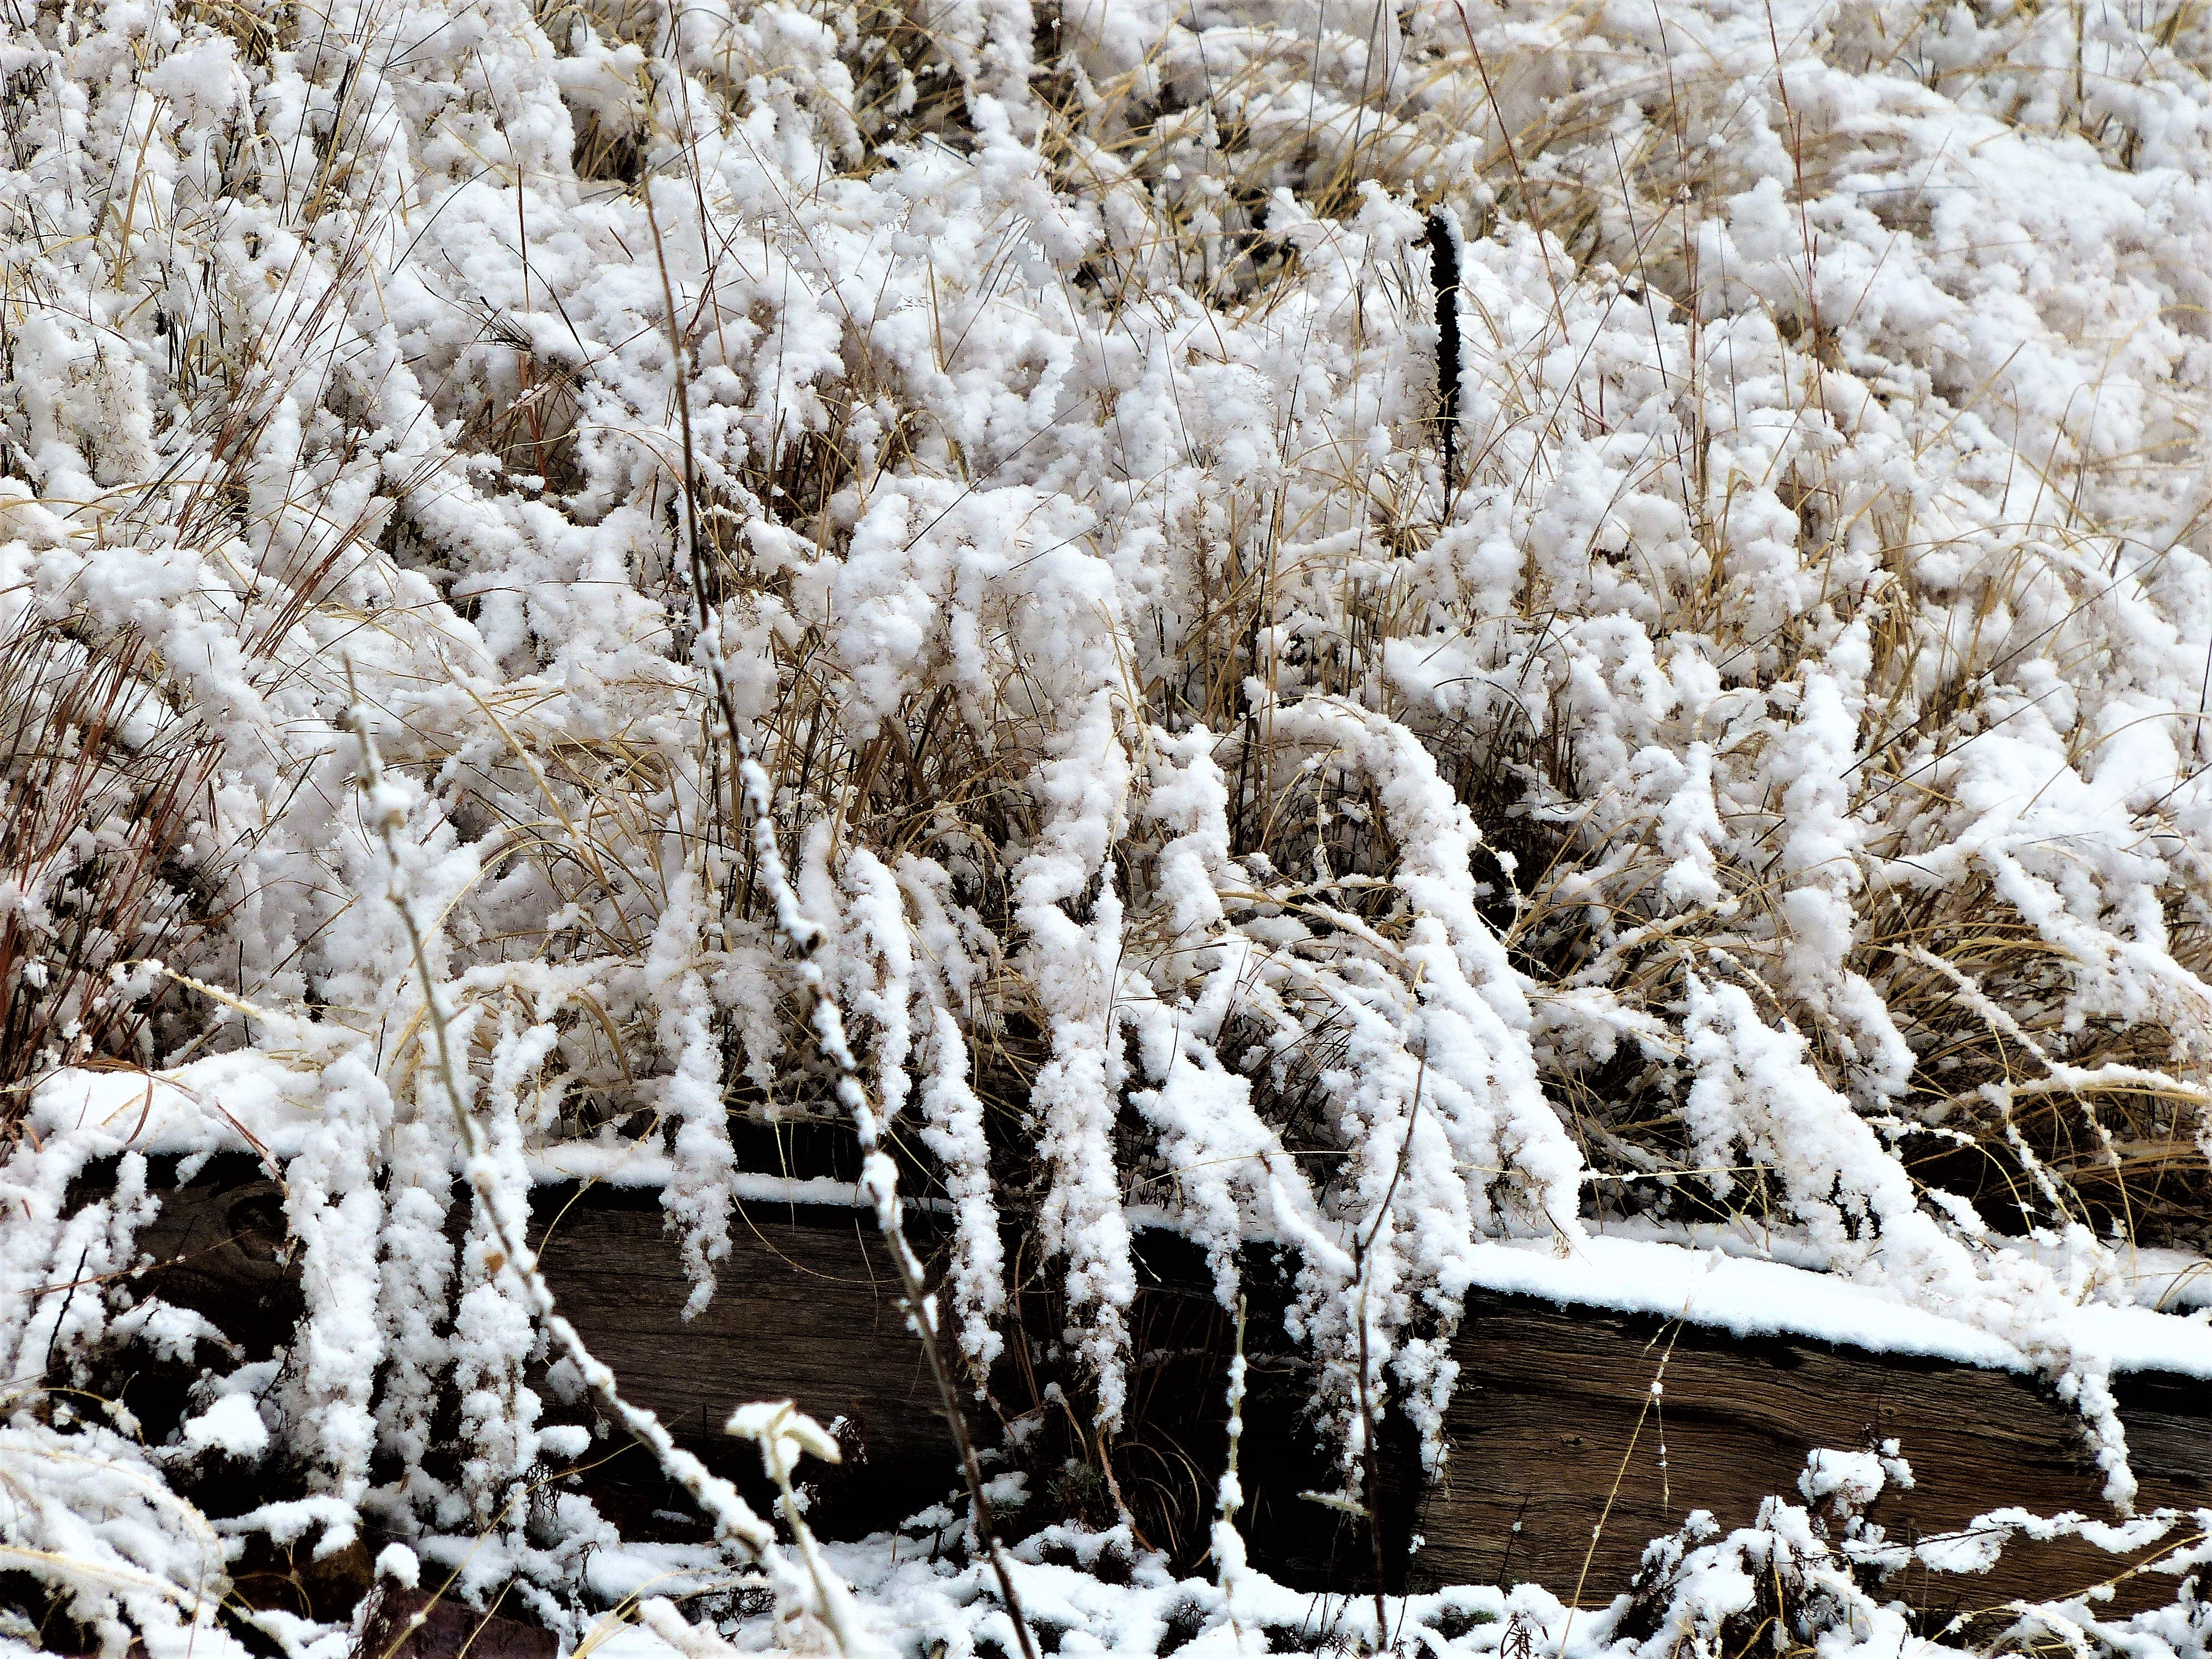 Tall grass from the Fall created droops from the weight of winter snow.